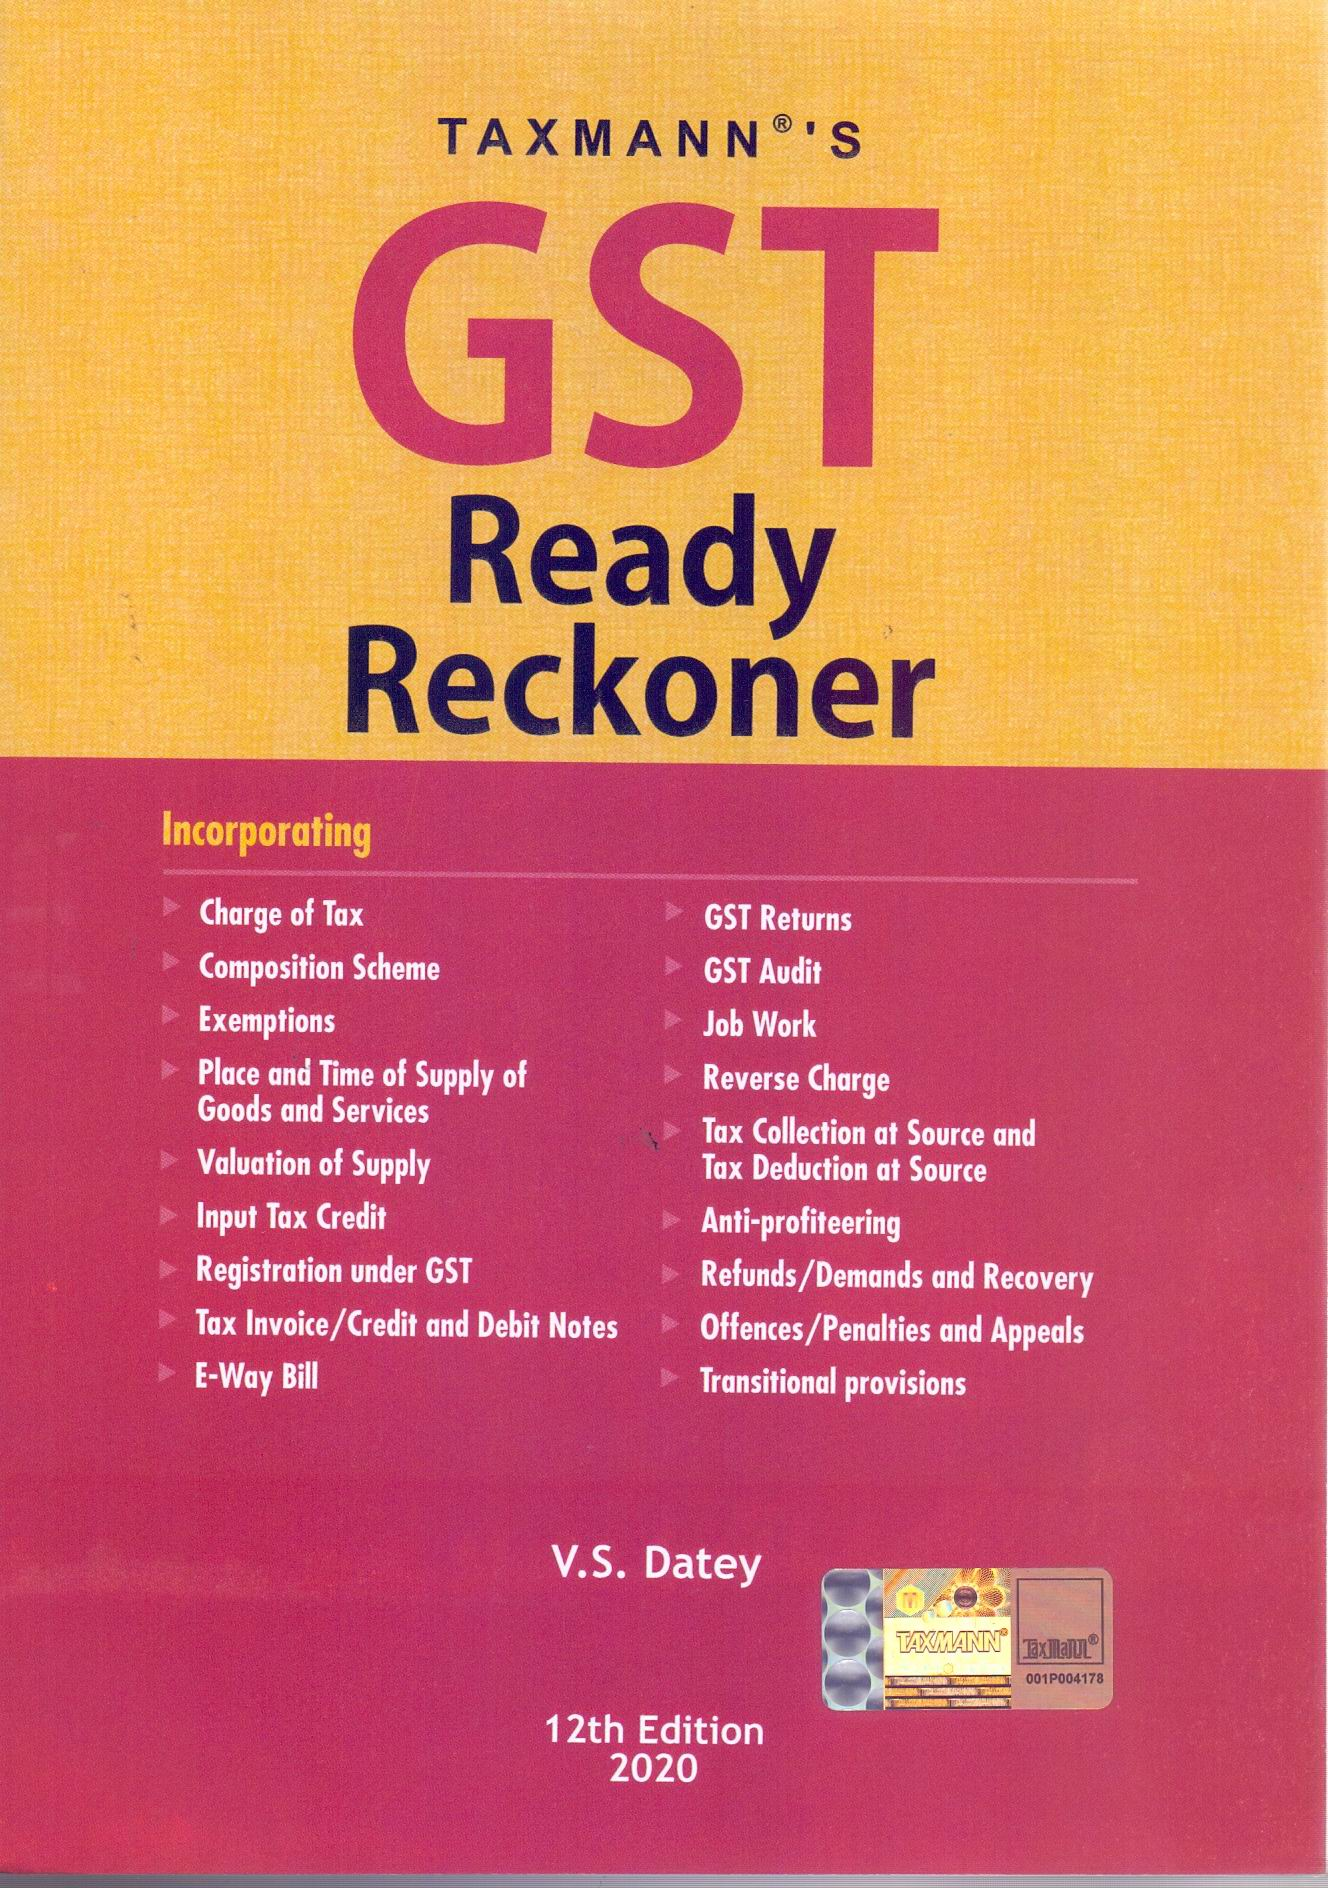 Taxmann Goods and Service Tax Ready Reckoner By V S Datey Edition 2020